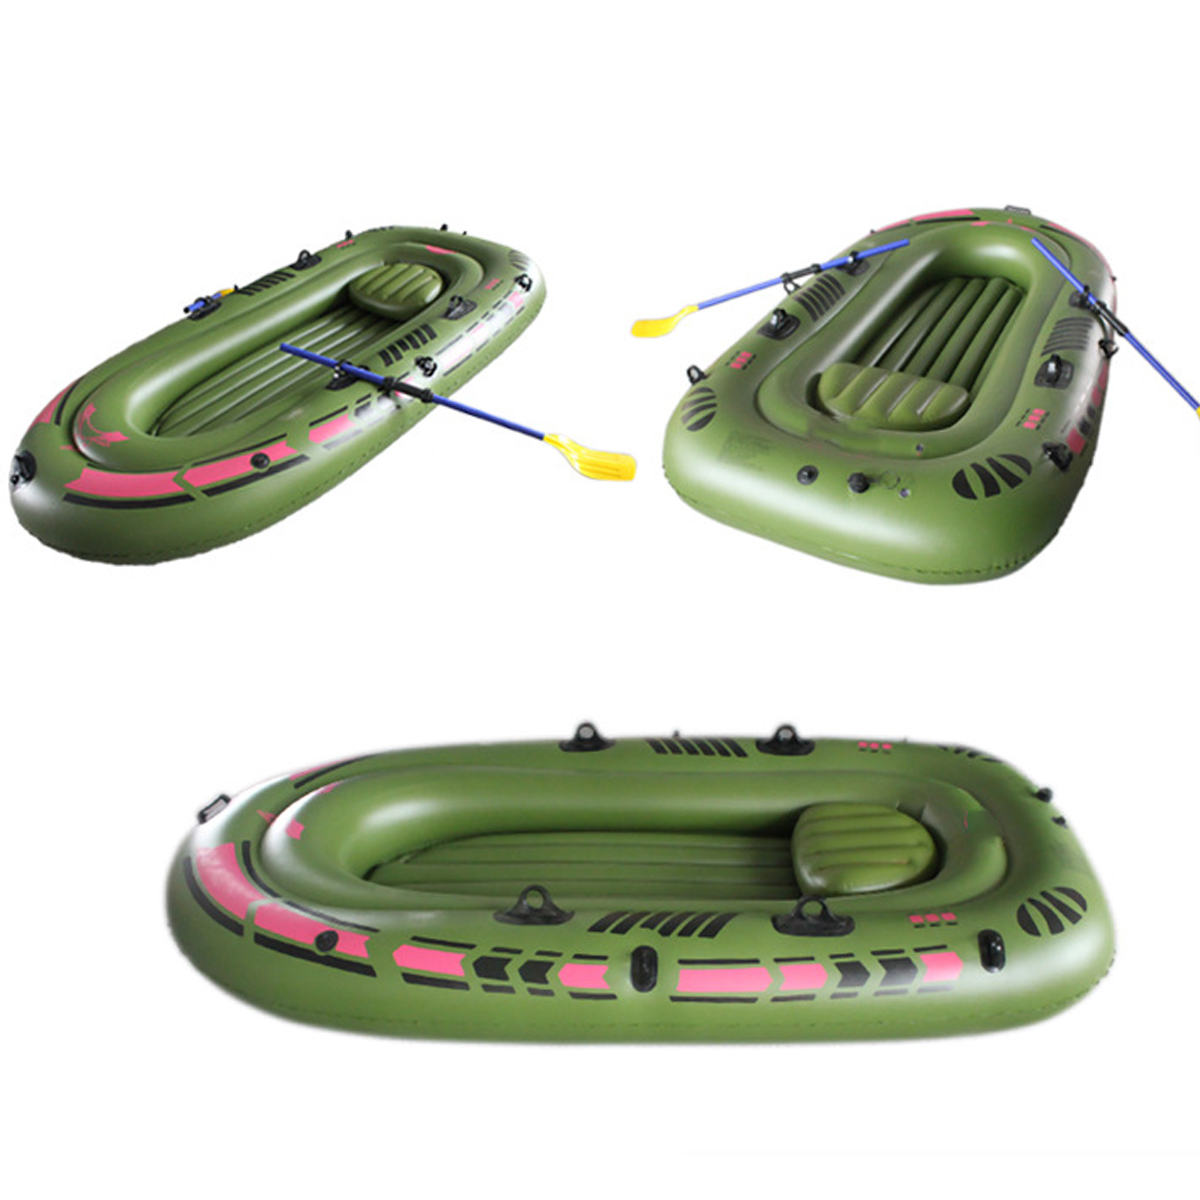 94.4''x53.9'' 3-Person PVC Rubber Green Kayak Inflatabl